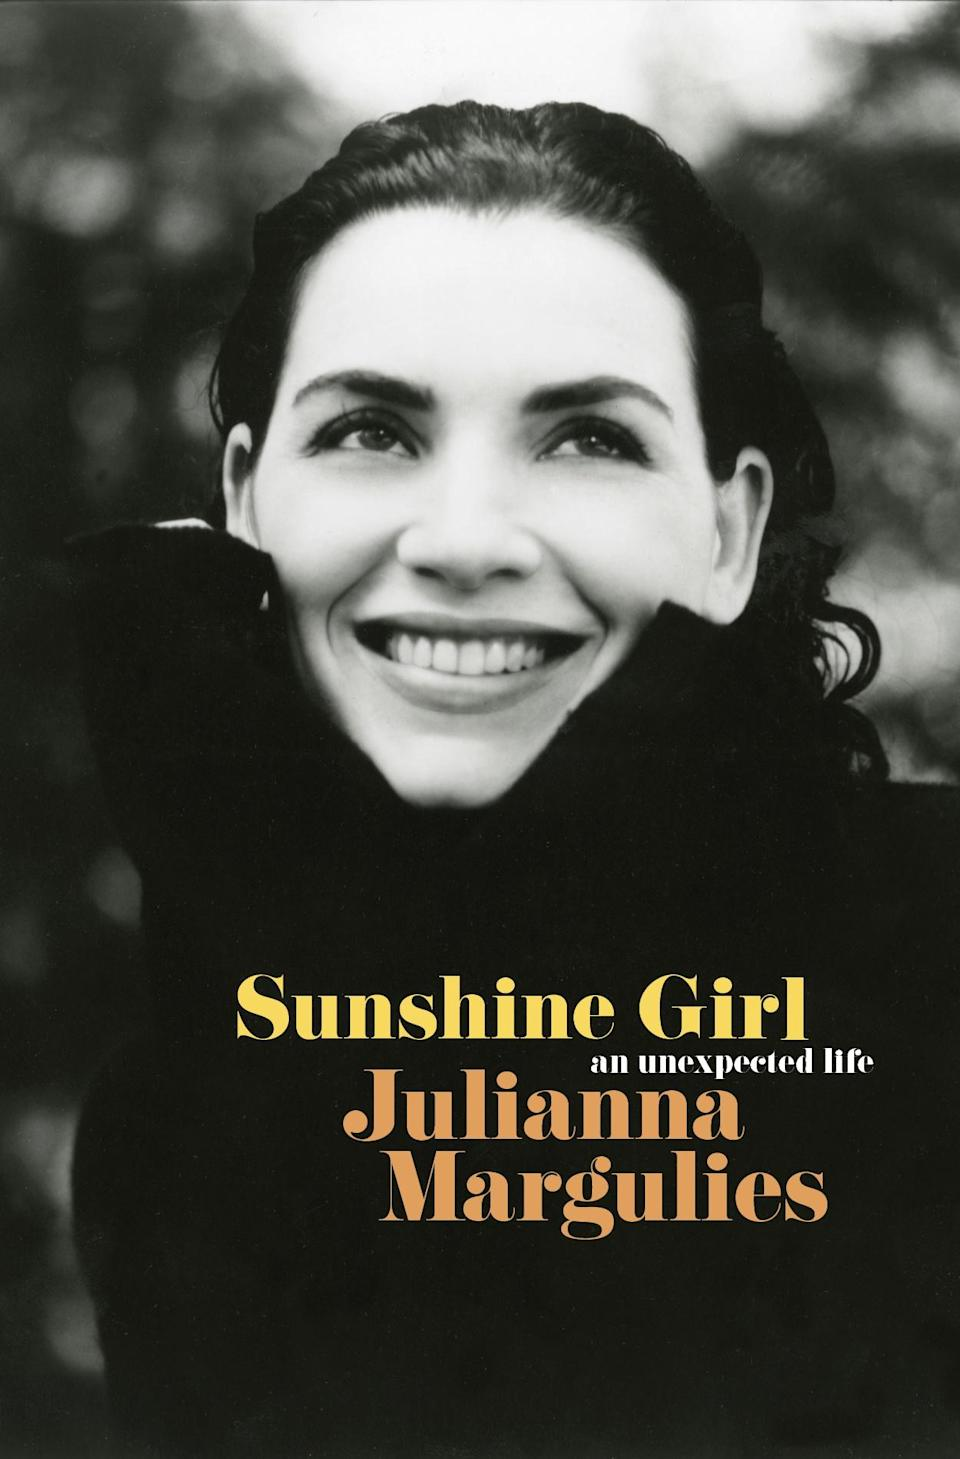 """<p>In an <a href=""""https://ew.com/books/julianna-margulies-memoir-interview-good-wife-er/"""" rel=""""nofollow noopener"""" target=""""_blank"""" data-ylk=""""slk:unflinching memoir"""" class=""""link rapid-noclick-resp"""">unflinching memoir</a>, the <em>Good Wife</em> actress opens up about her disjointed childhood, her parents' messy divorce, her rise to fame, and of course, George Clooney. (May 4)</p>"""